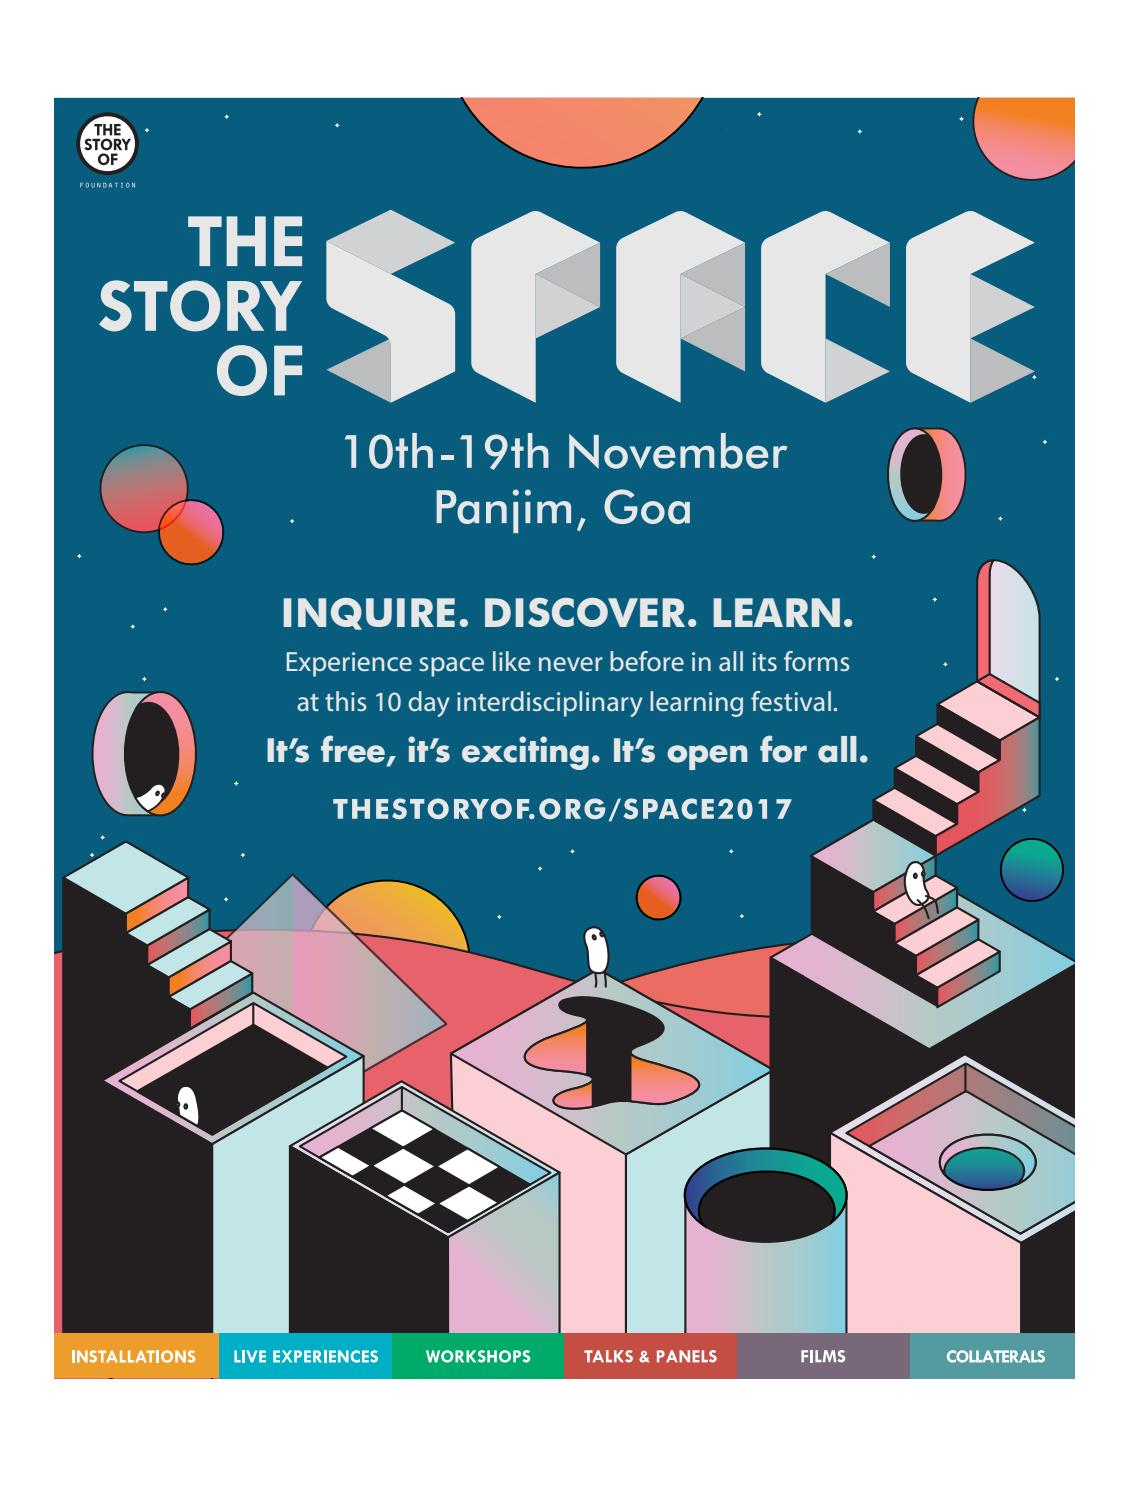 Arte Digital World Panjim Goa The Story Of Space 2017 By The Story Of Space Issuu